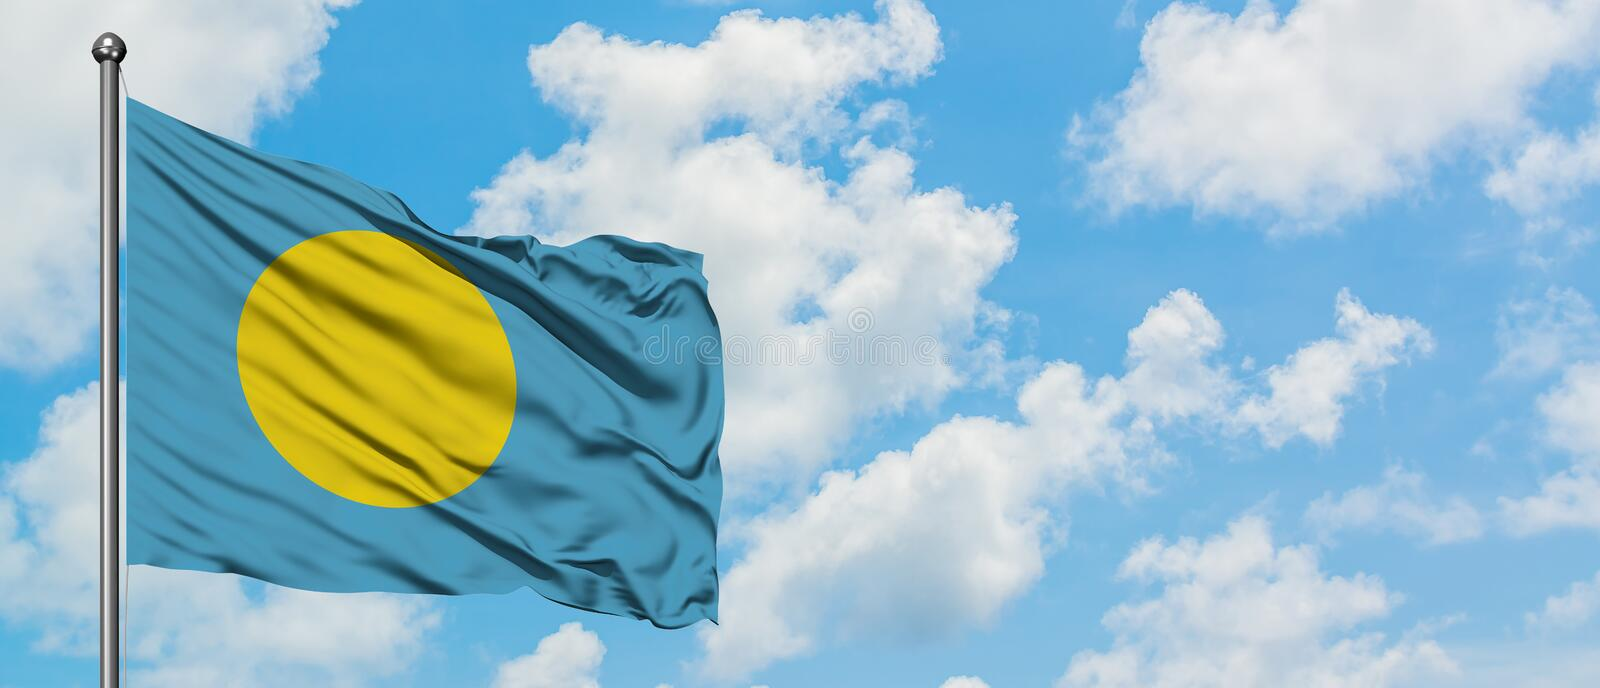 Palau flag waving in the wind against white cloudy blue sky. Diplomacy concept, international relations.  royalty free stock photography